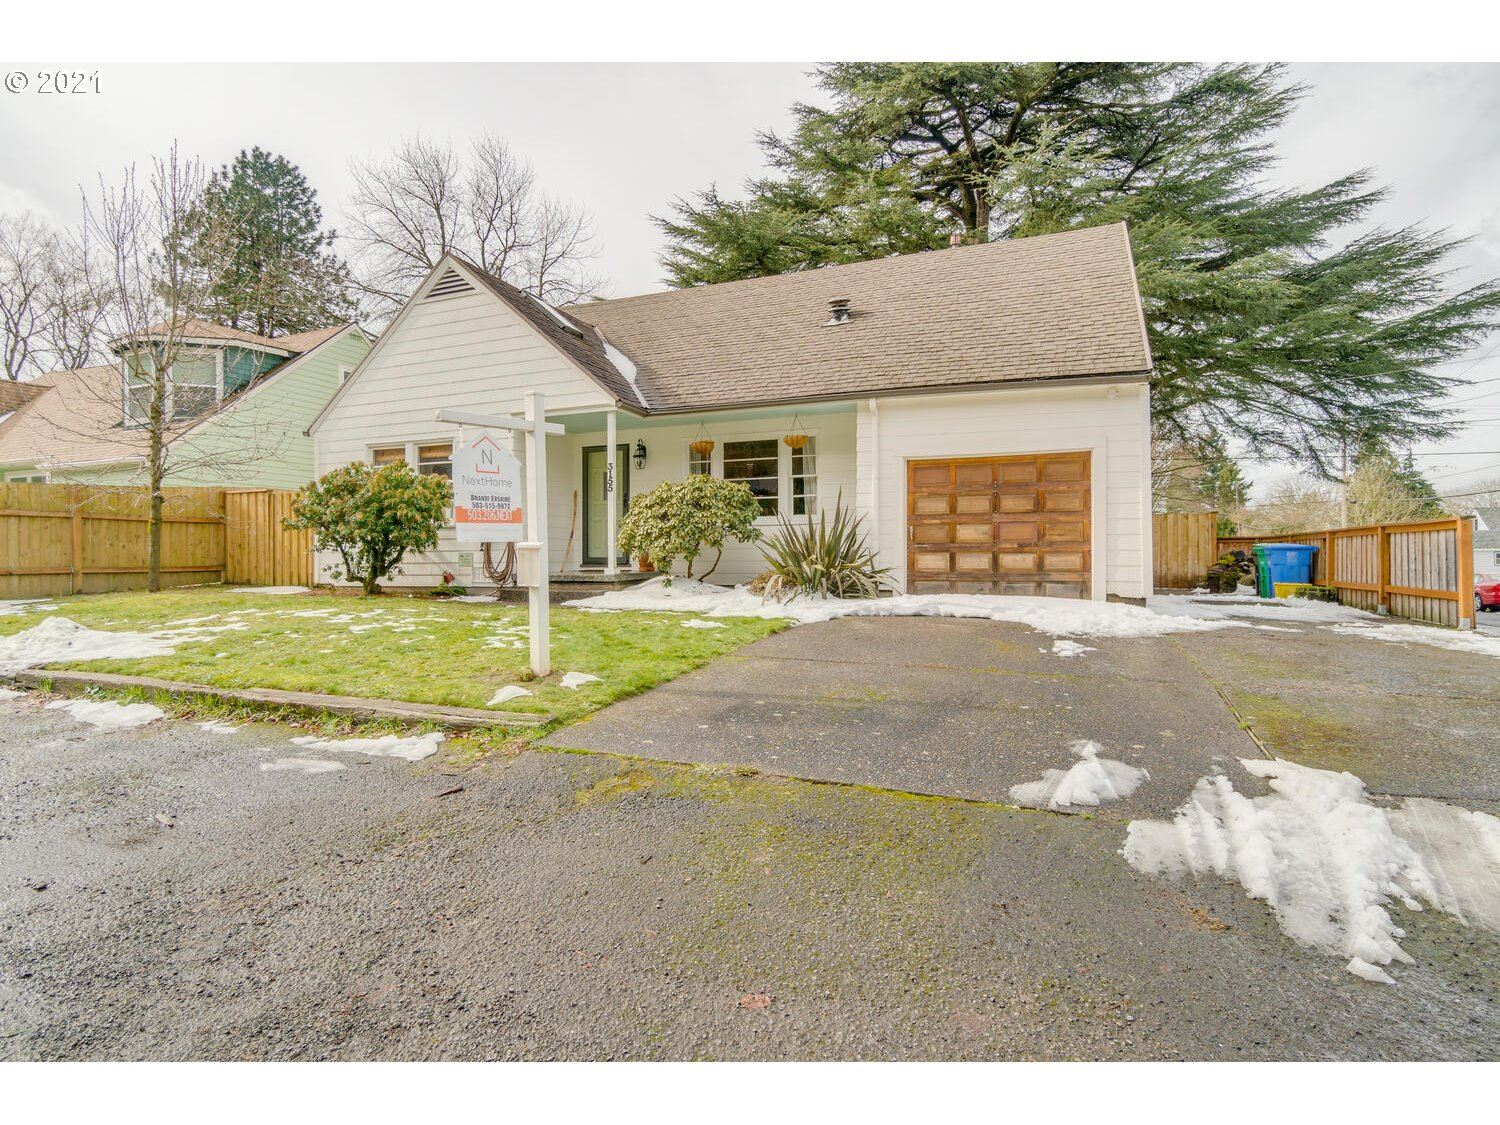 3155 NE 92ND AVE, Portland, OR 97220 - MLS#: 21114444